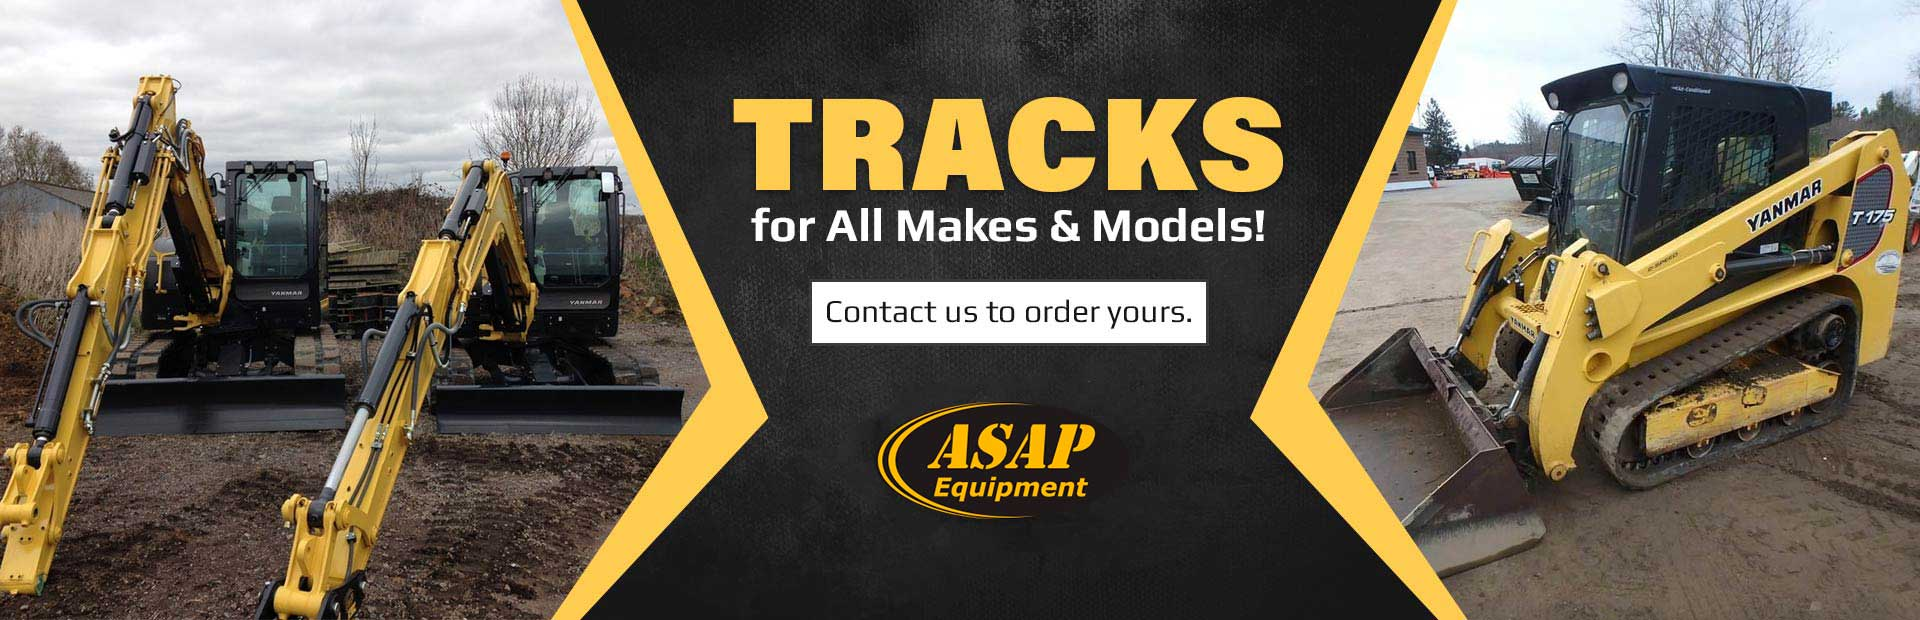 We make tracks for all makes and models! Contact us for details.